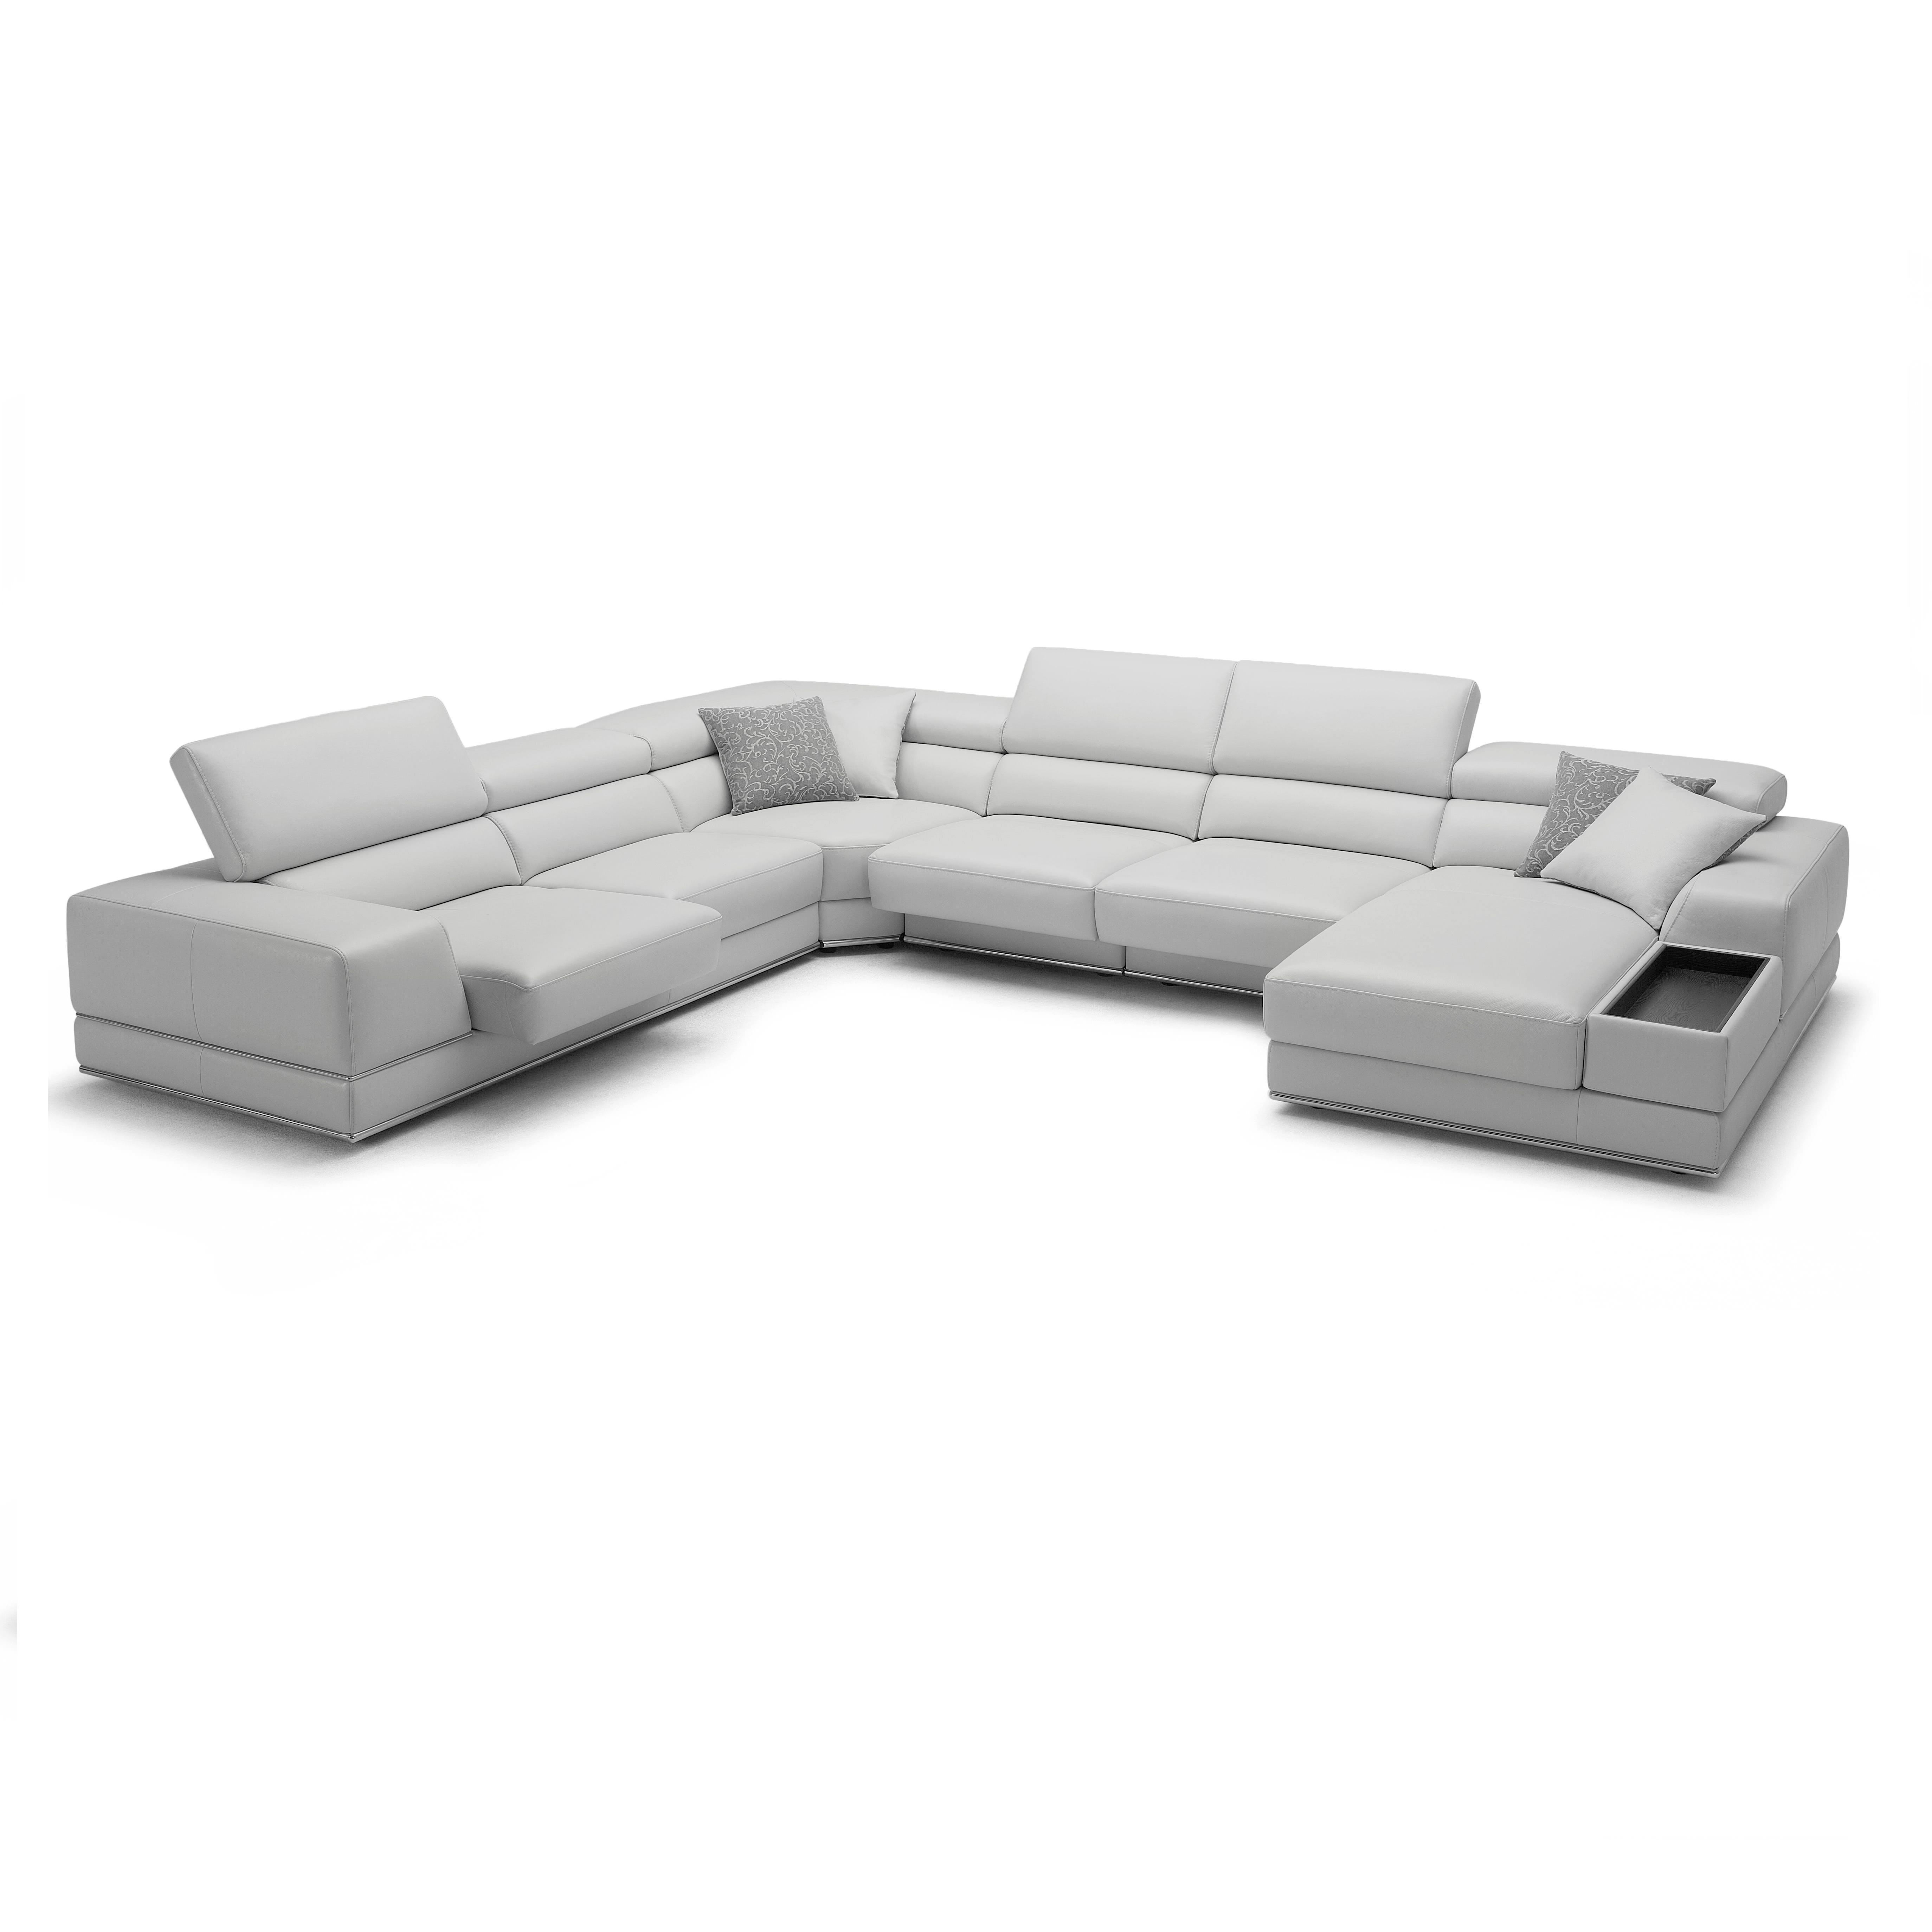 plete Your Room with the Bergamo Sectional Sofa